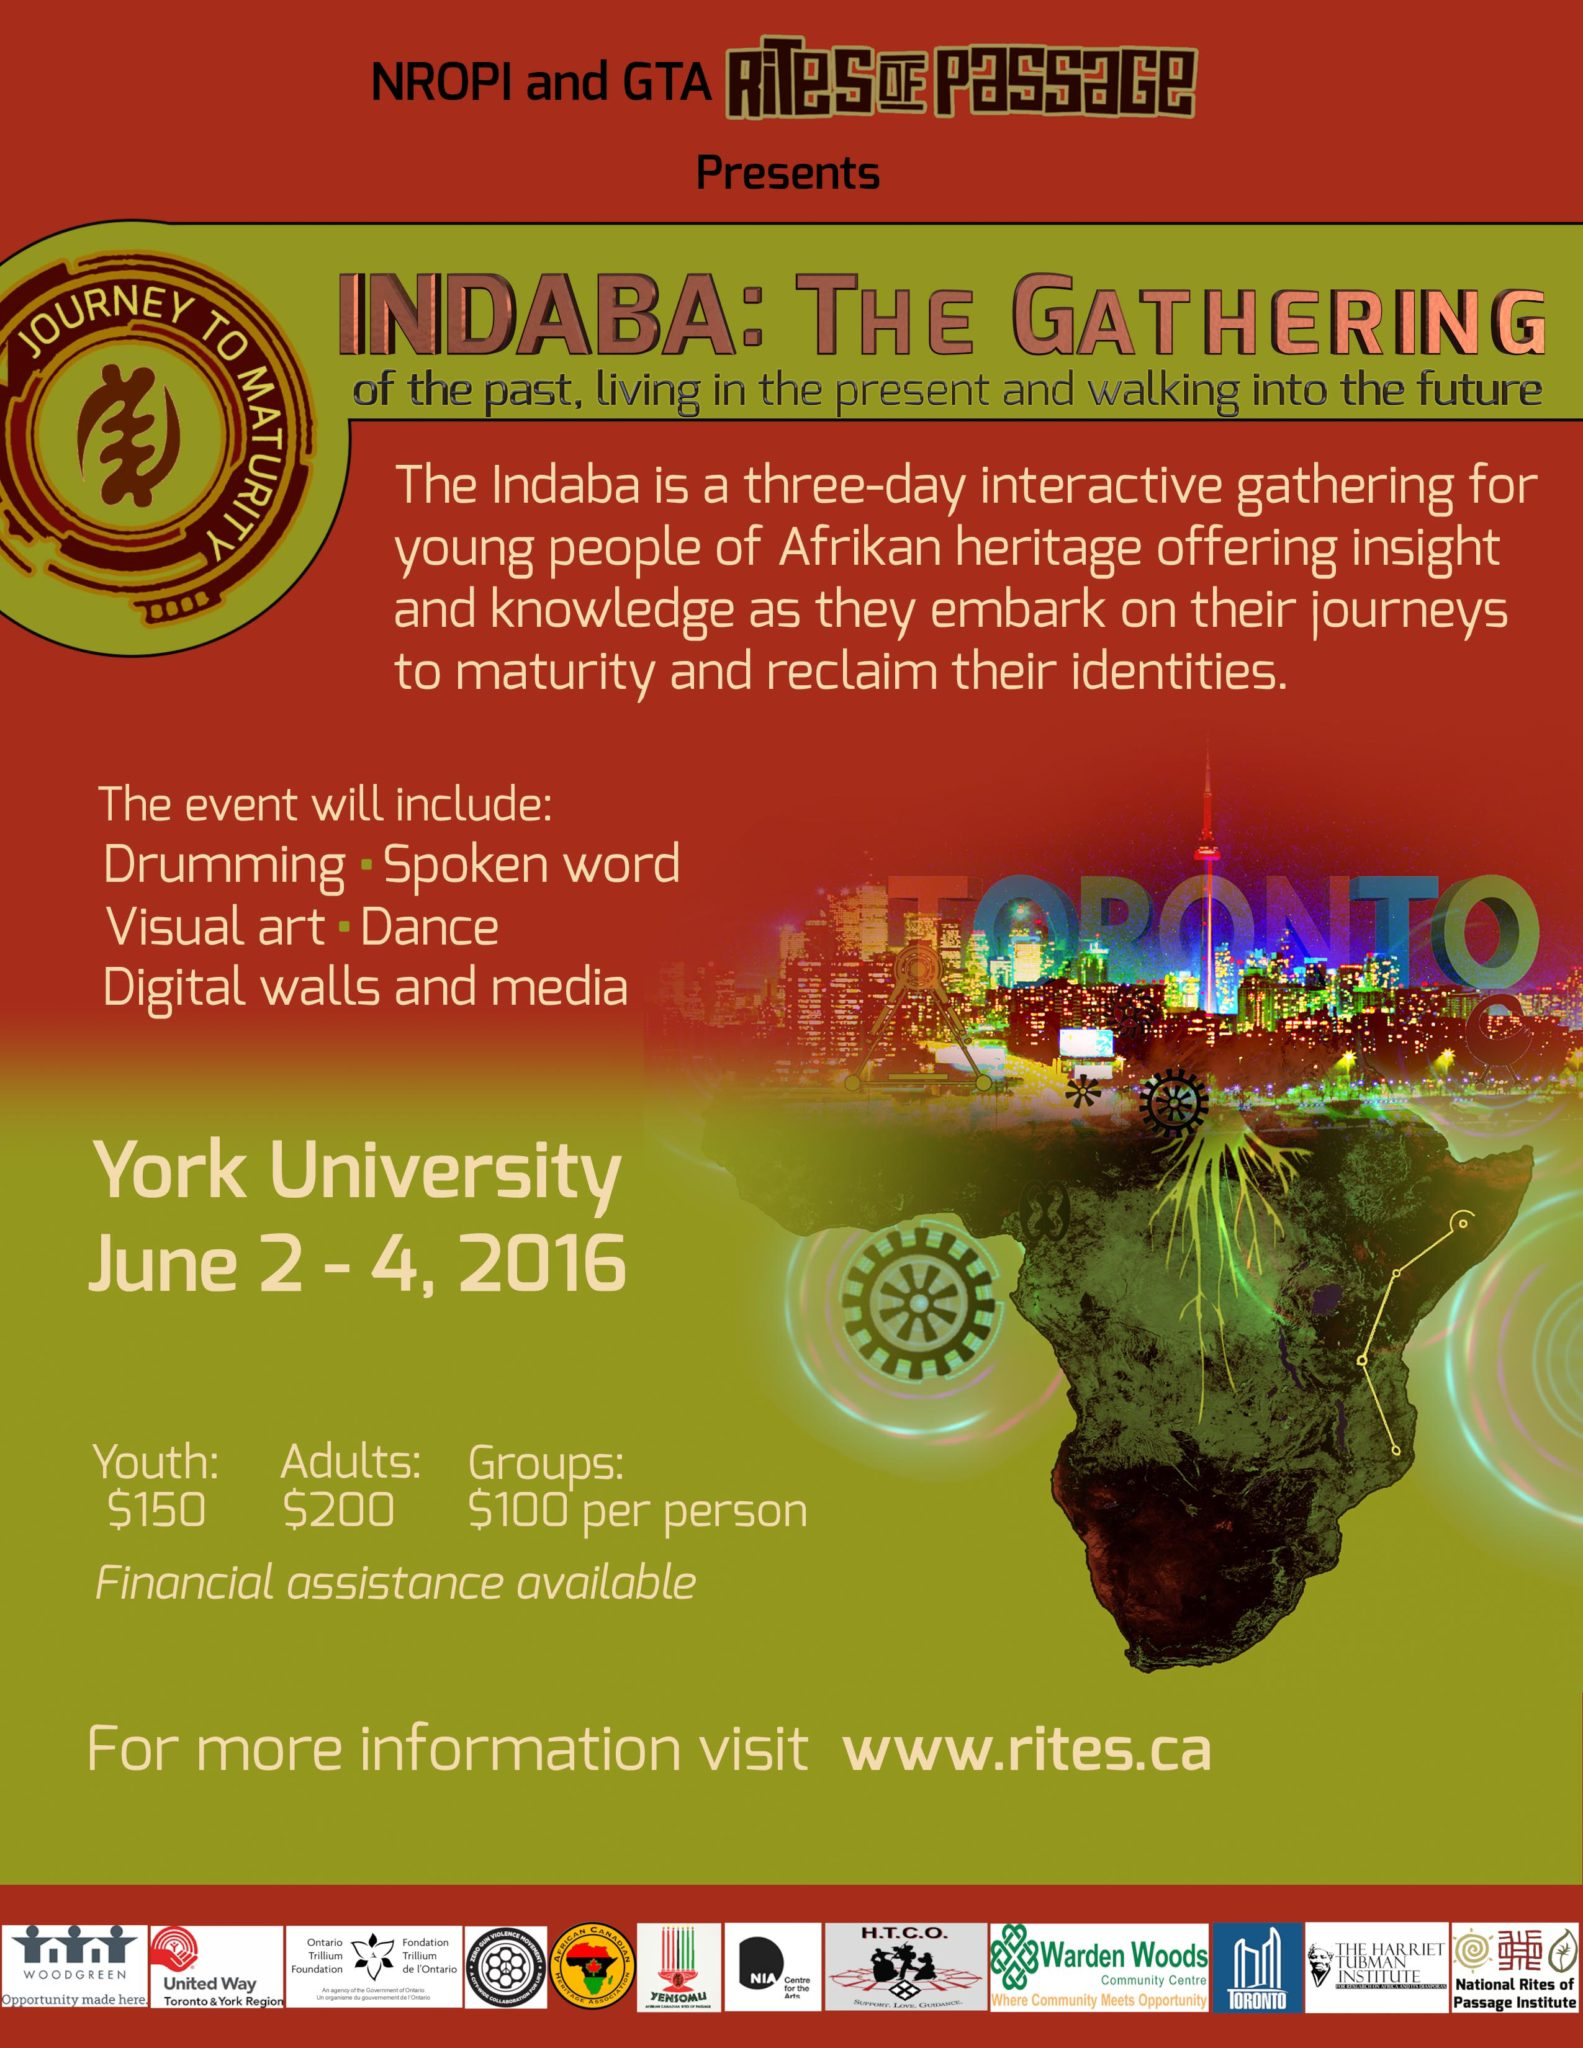 The Dr. Vibe Show™ Shared At The Indaba Youth Conference – June 2 – 4, 2016 At York University In Toronto